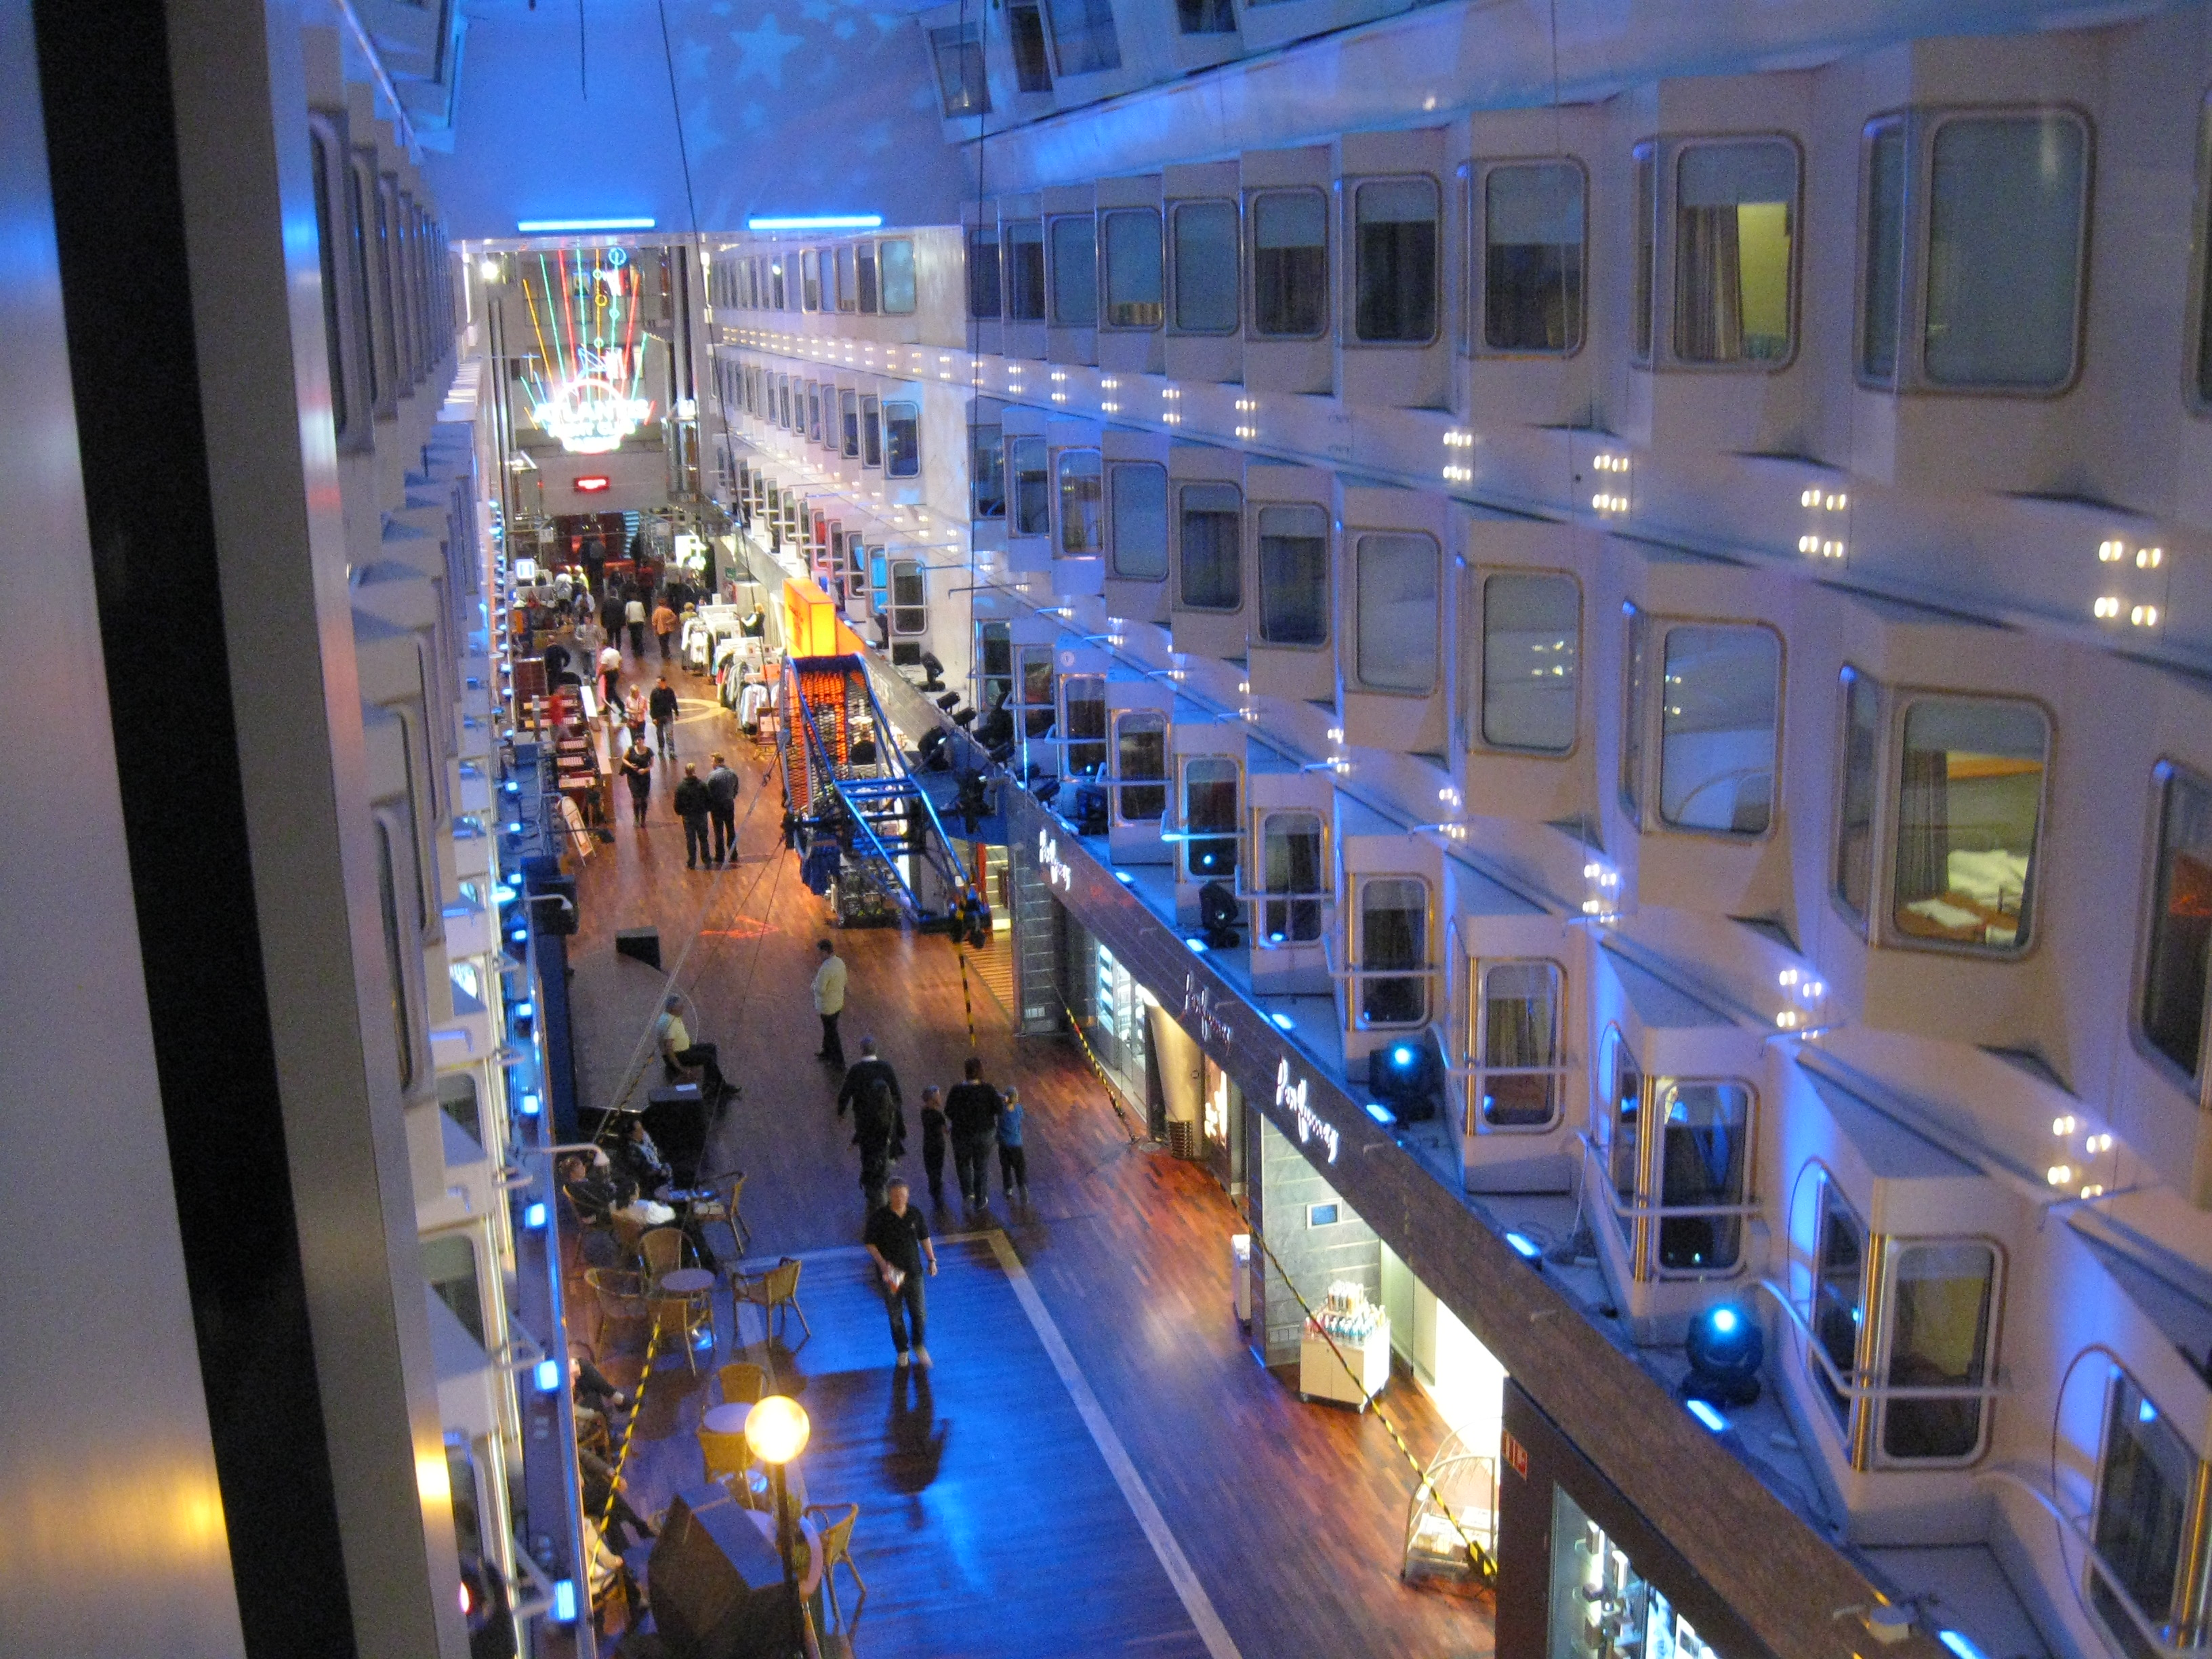 spa kryssning viking line